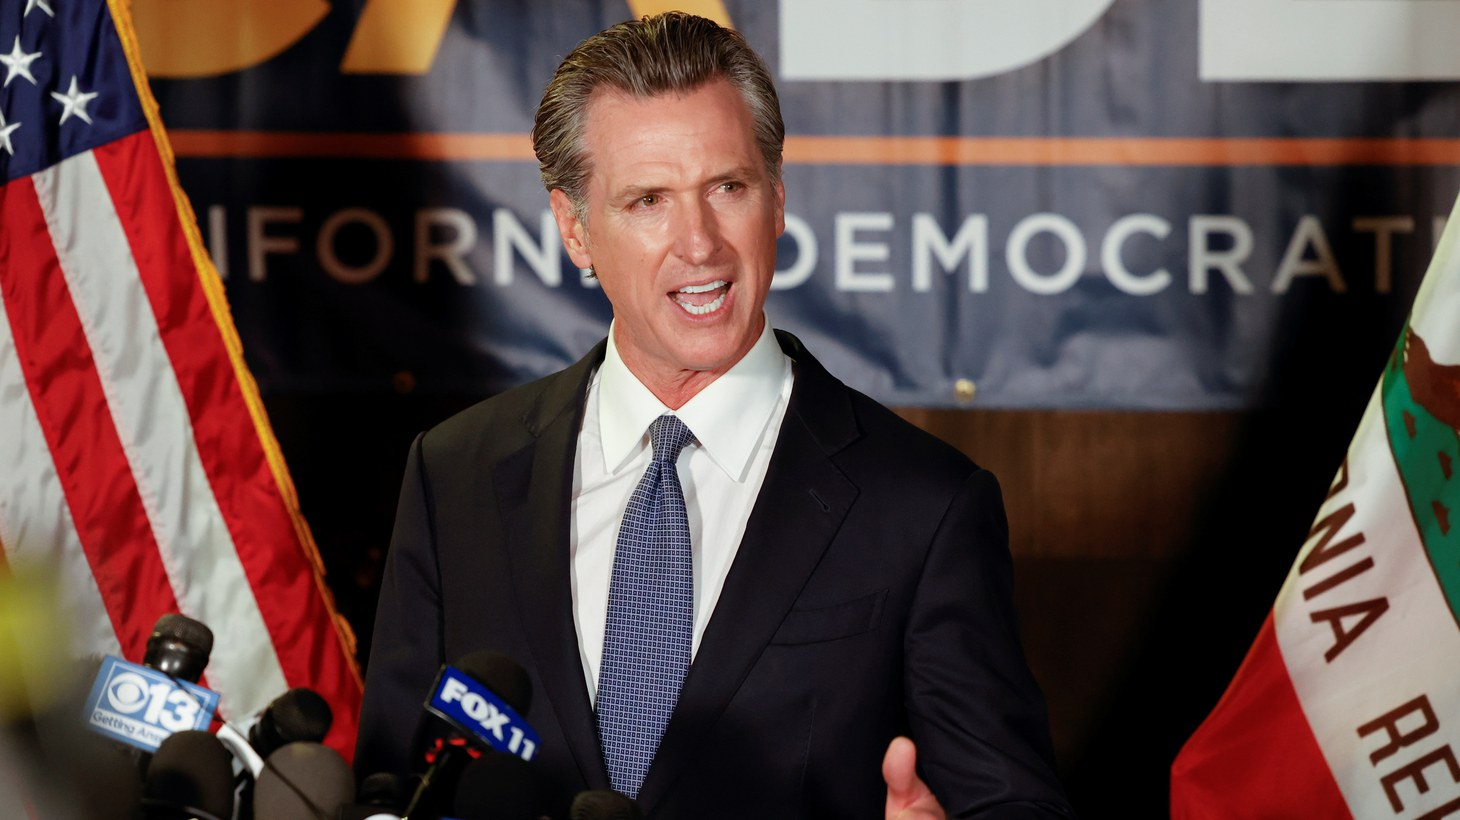 Governor Newsom celebrated his victory Wednesday night as preliminary vote counts indicated that he successfully defeated the recall effort. But Leafly Senior Editor David Downs says the rollout of cannabis legalization may cost him support from industry insiders.